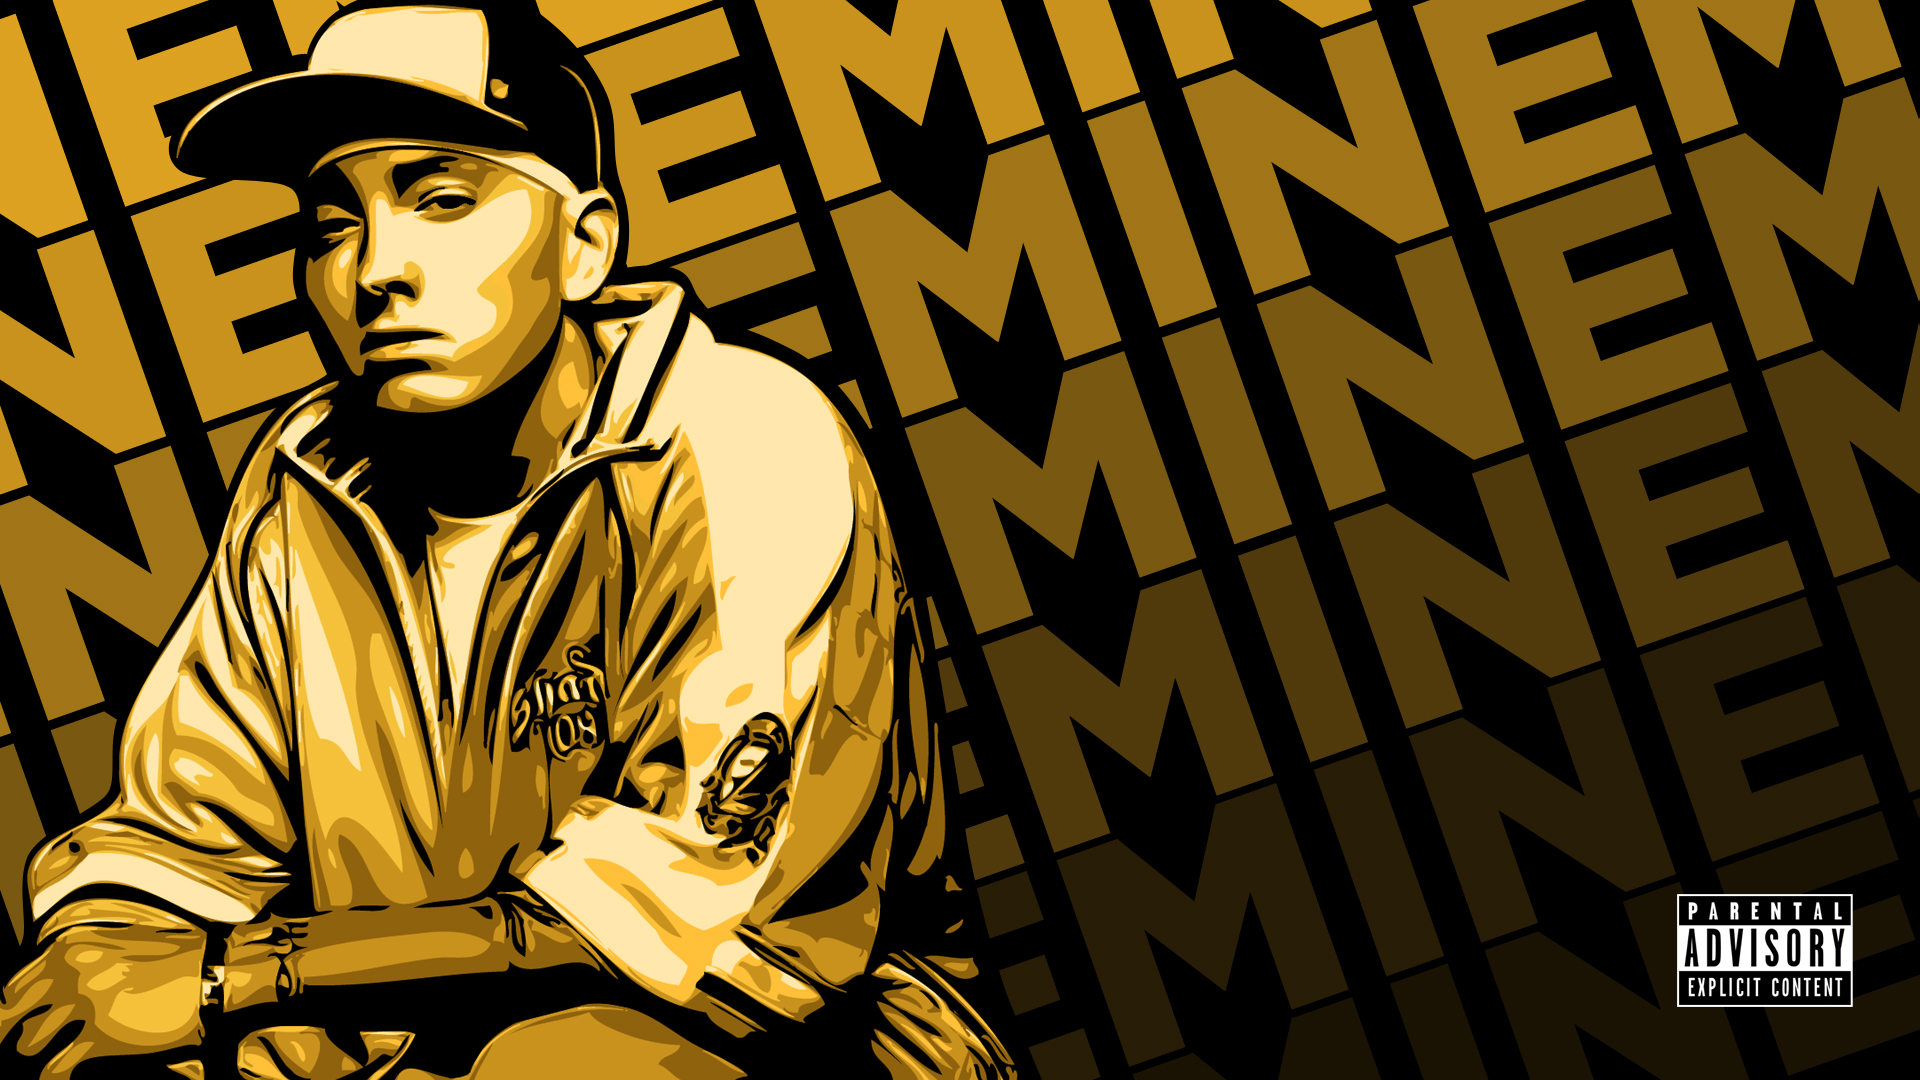 <b>Eminem Wallpaper Desktop</b> - <b>Wallpapers</b> Browse